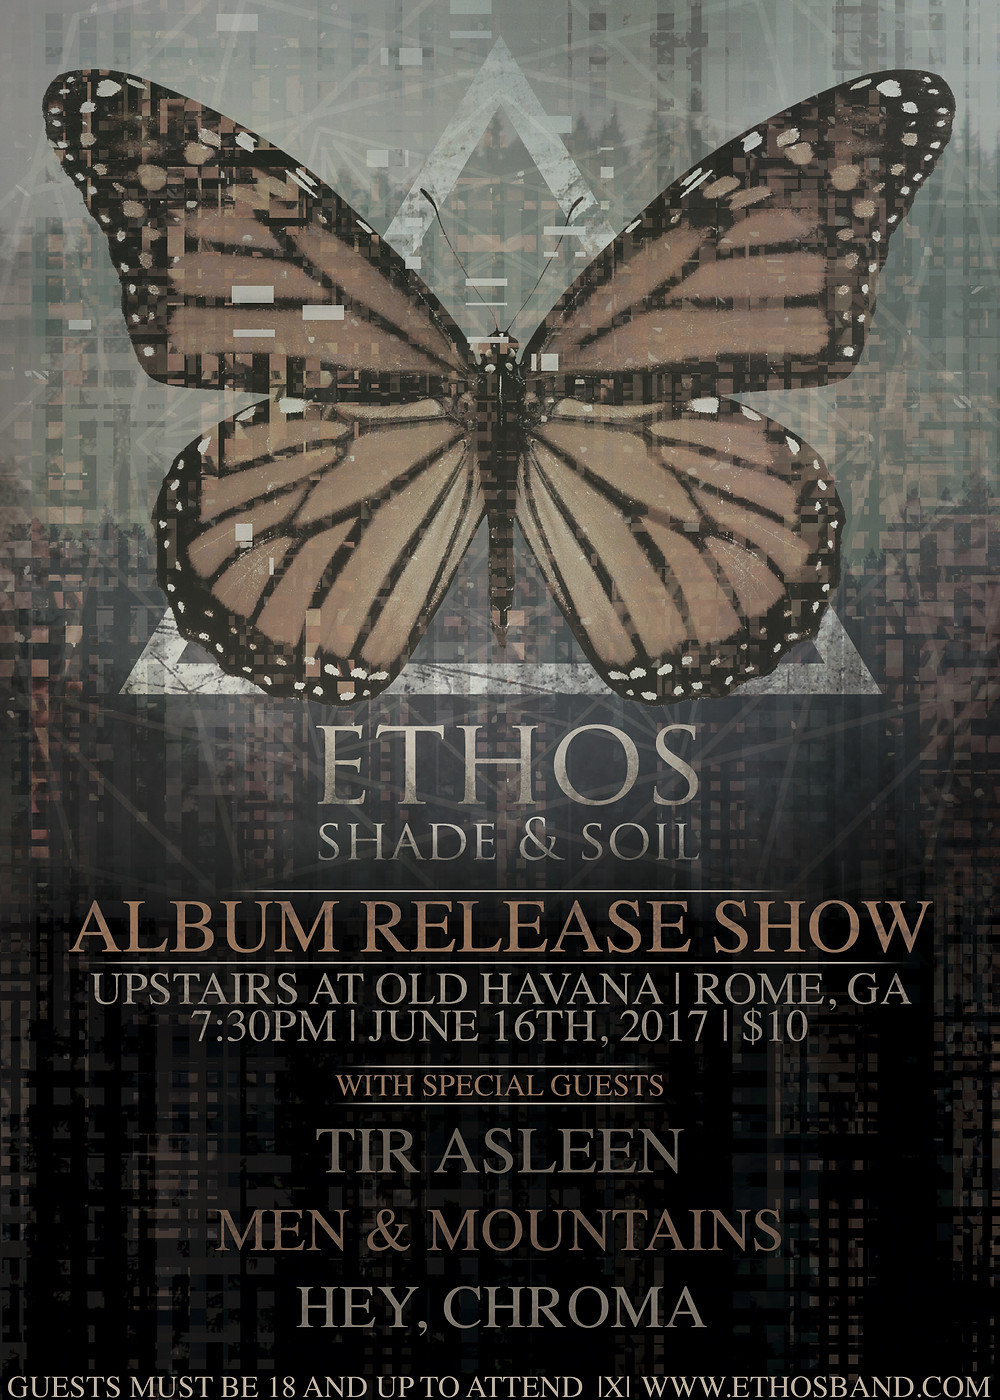 ethos, release, album, shade and soil